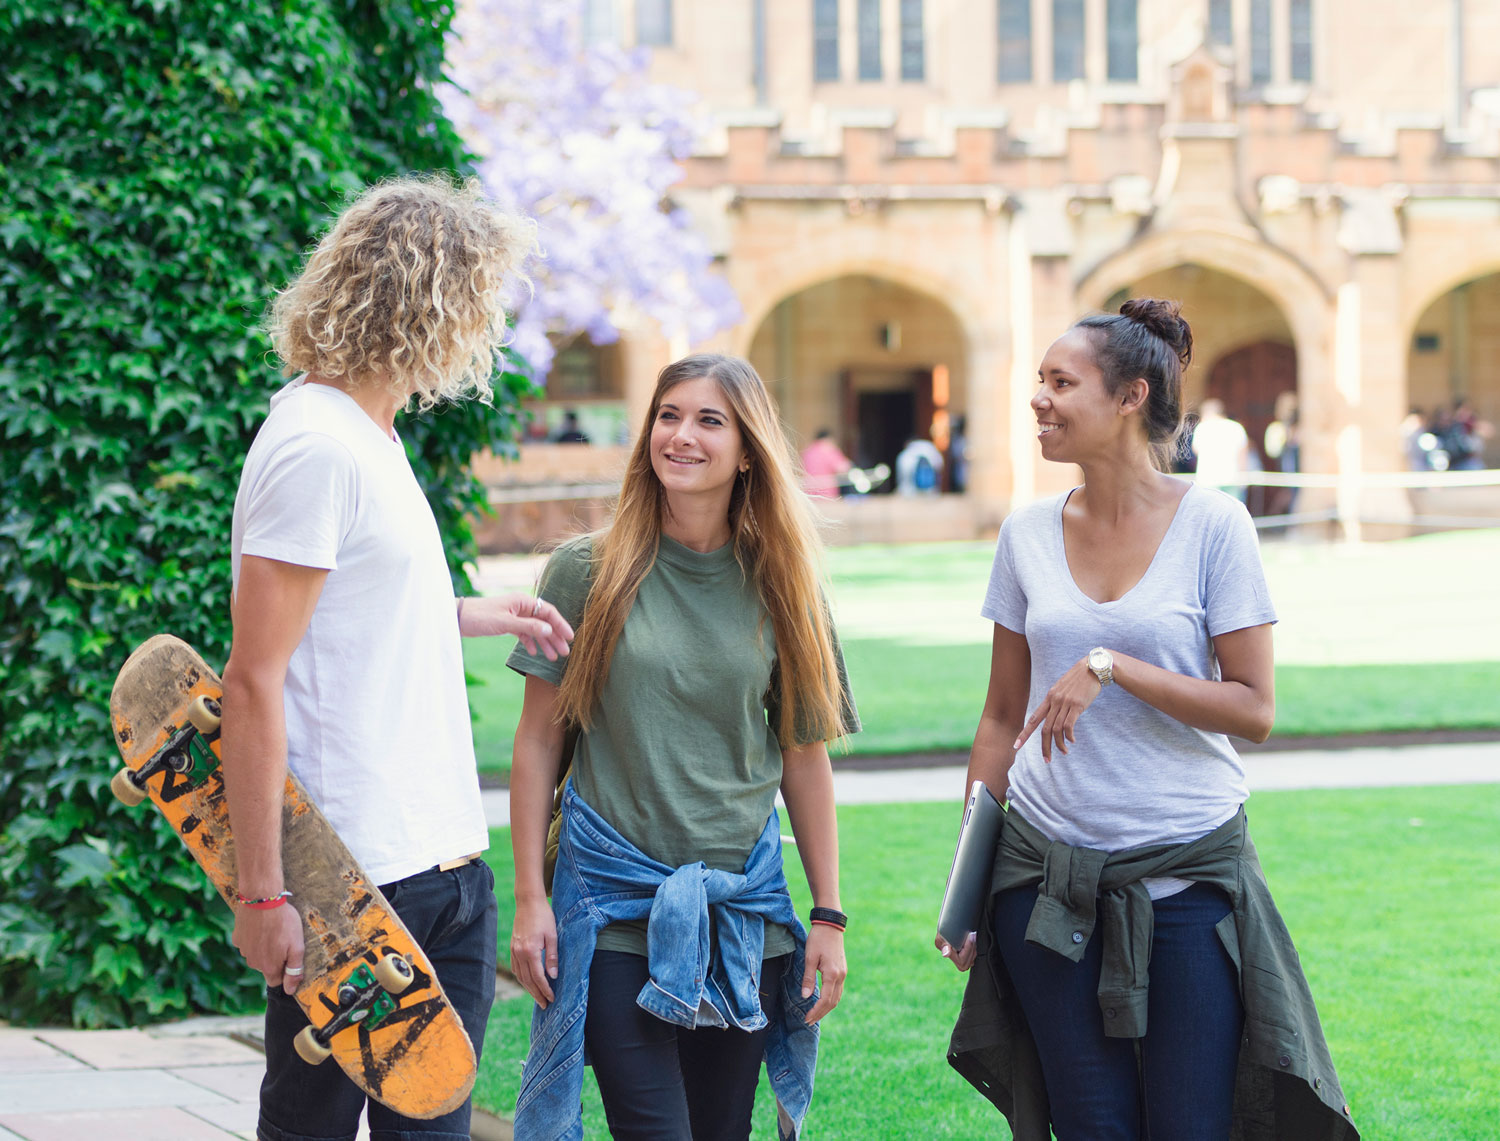 Australian students walking on campus at University of Sydney